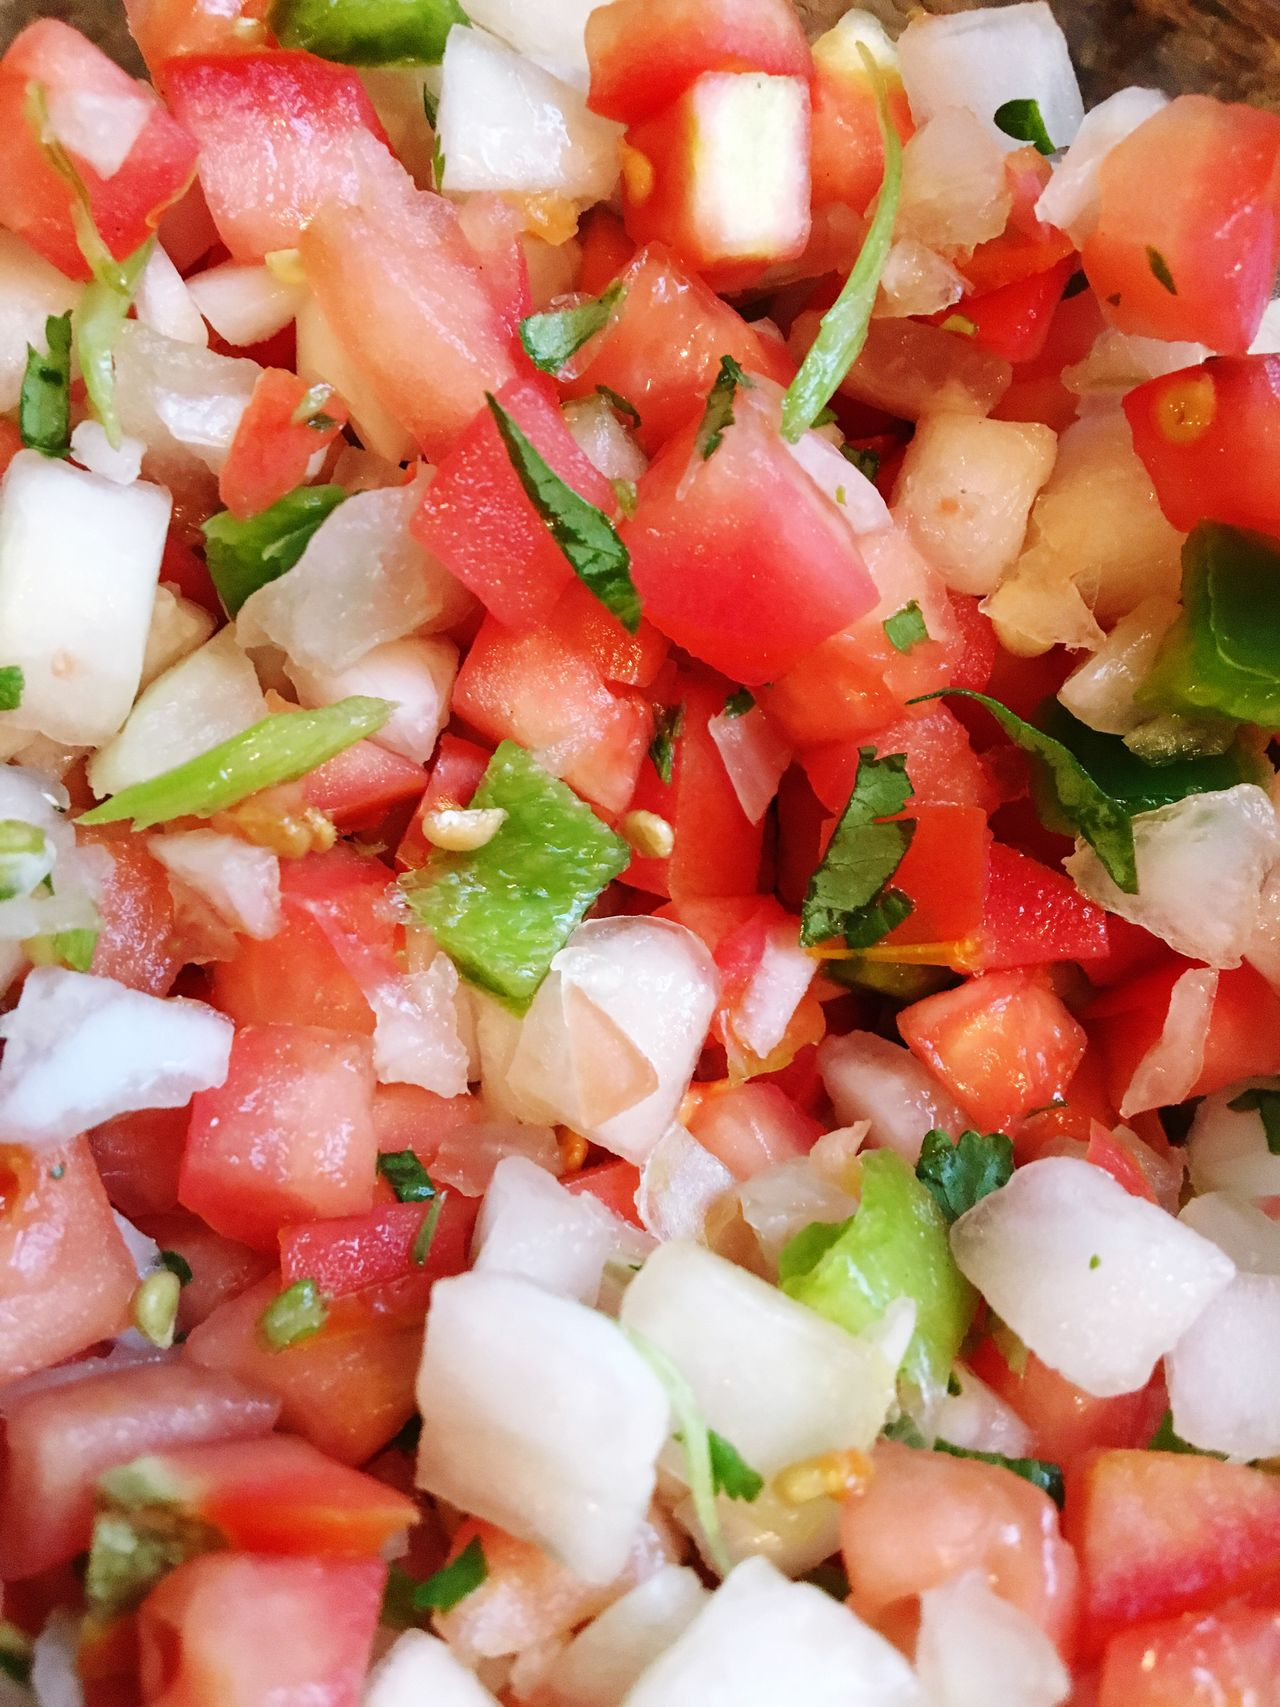 Dinner time.... Yummy Foodie Food Healthy Veggies Pico De Gallo Colorful My Favorite  My Photo Homemade Chef Tasty😋 Tasty Food Come Get Some